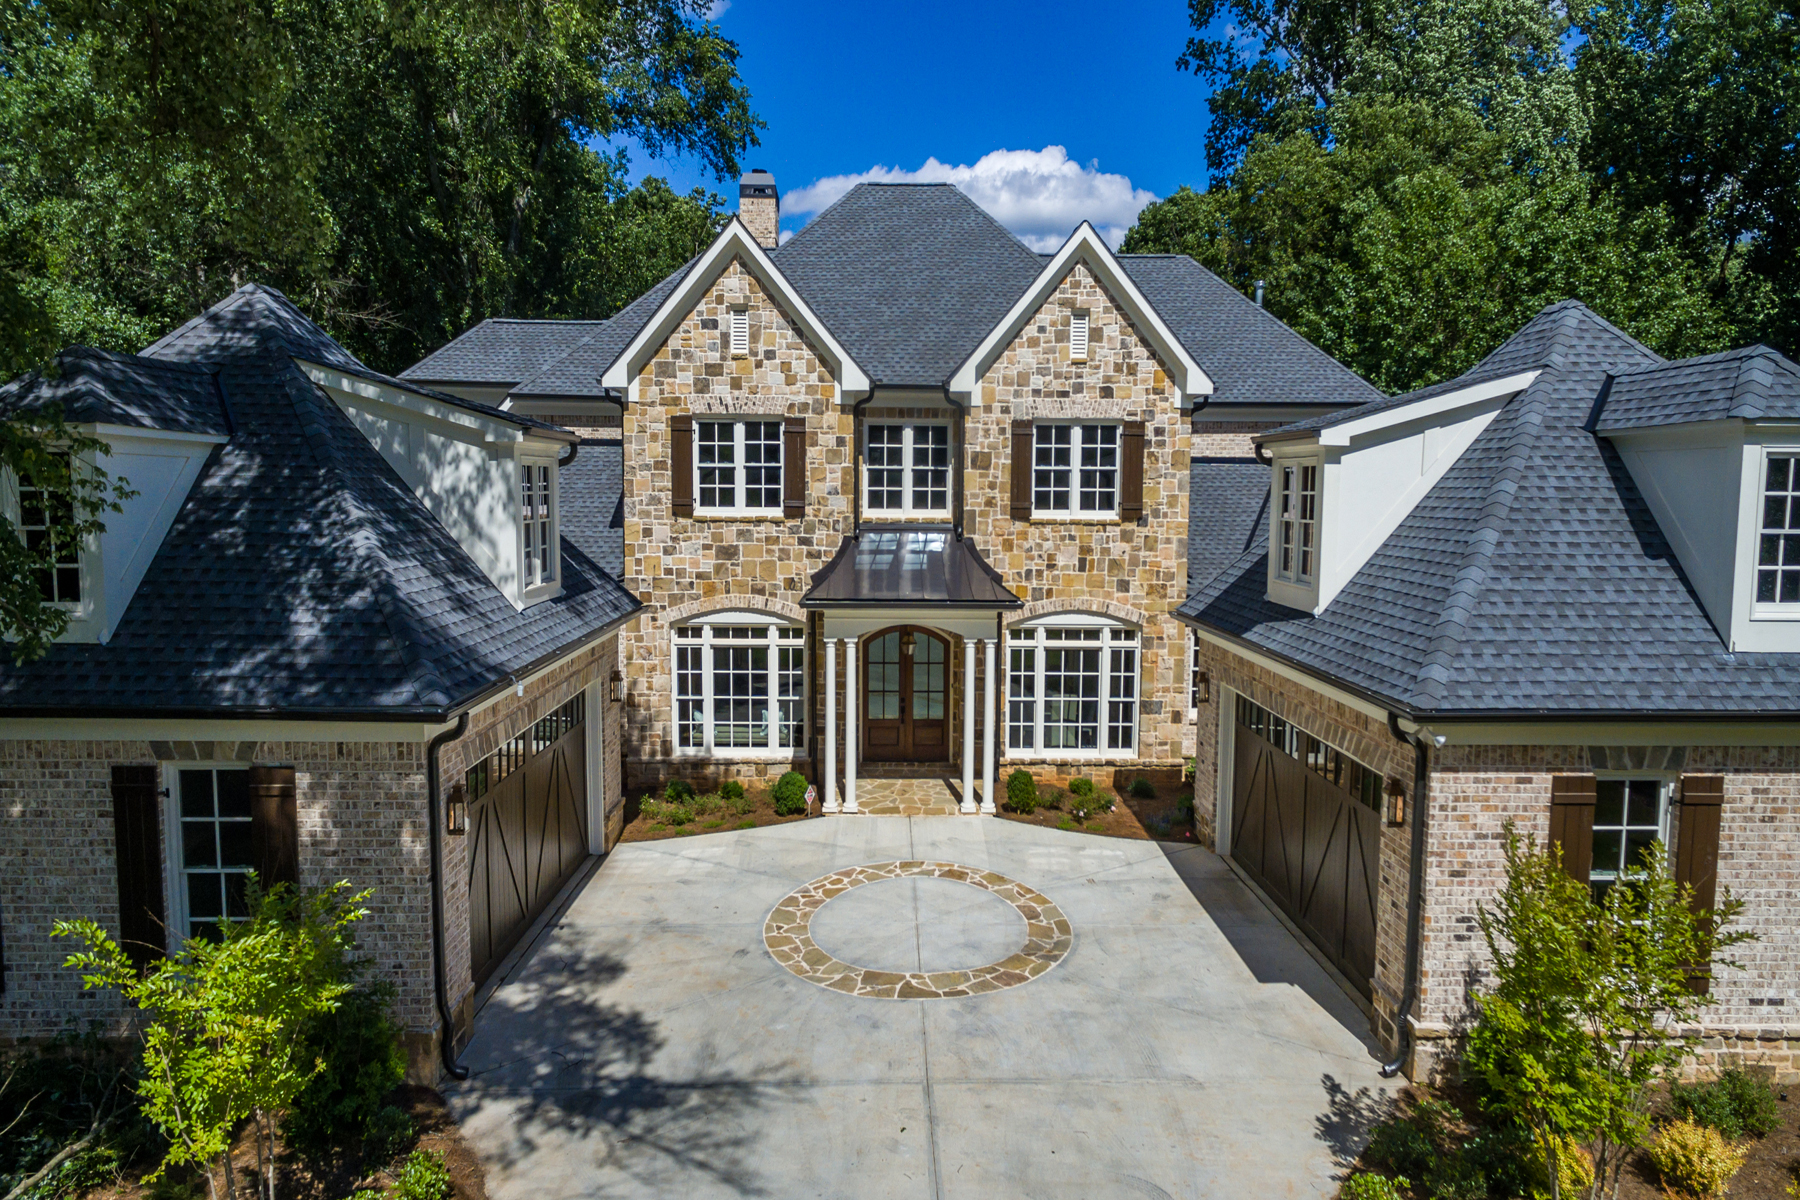 Single Family Home for Sale at New Home In Chastain 4685 Lake Forrest Drive Atlanta, Georgia, 30342 United States